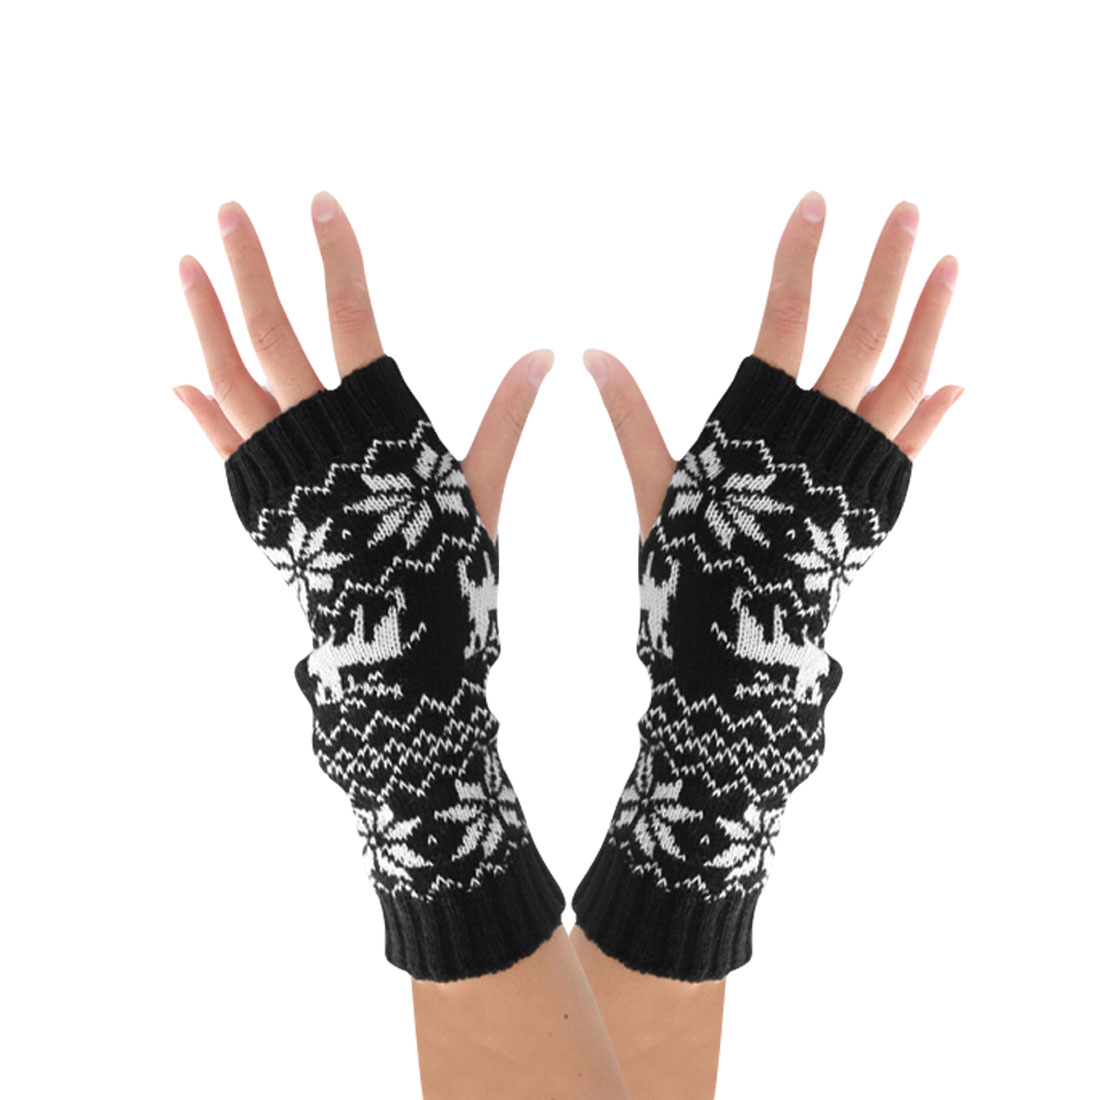 Mens Black White Stretchy Snowflake Print Fingerless Ribbed Trim Warmers Gloves